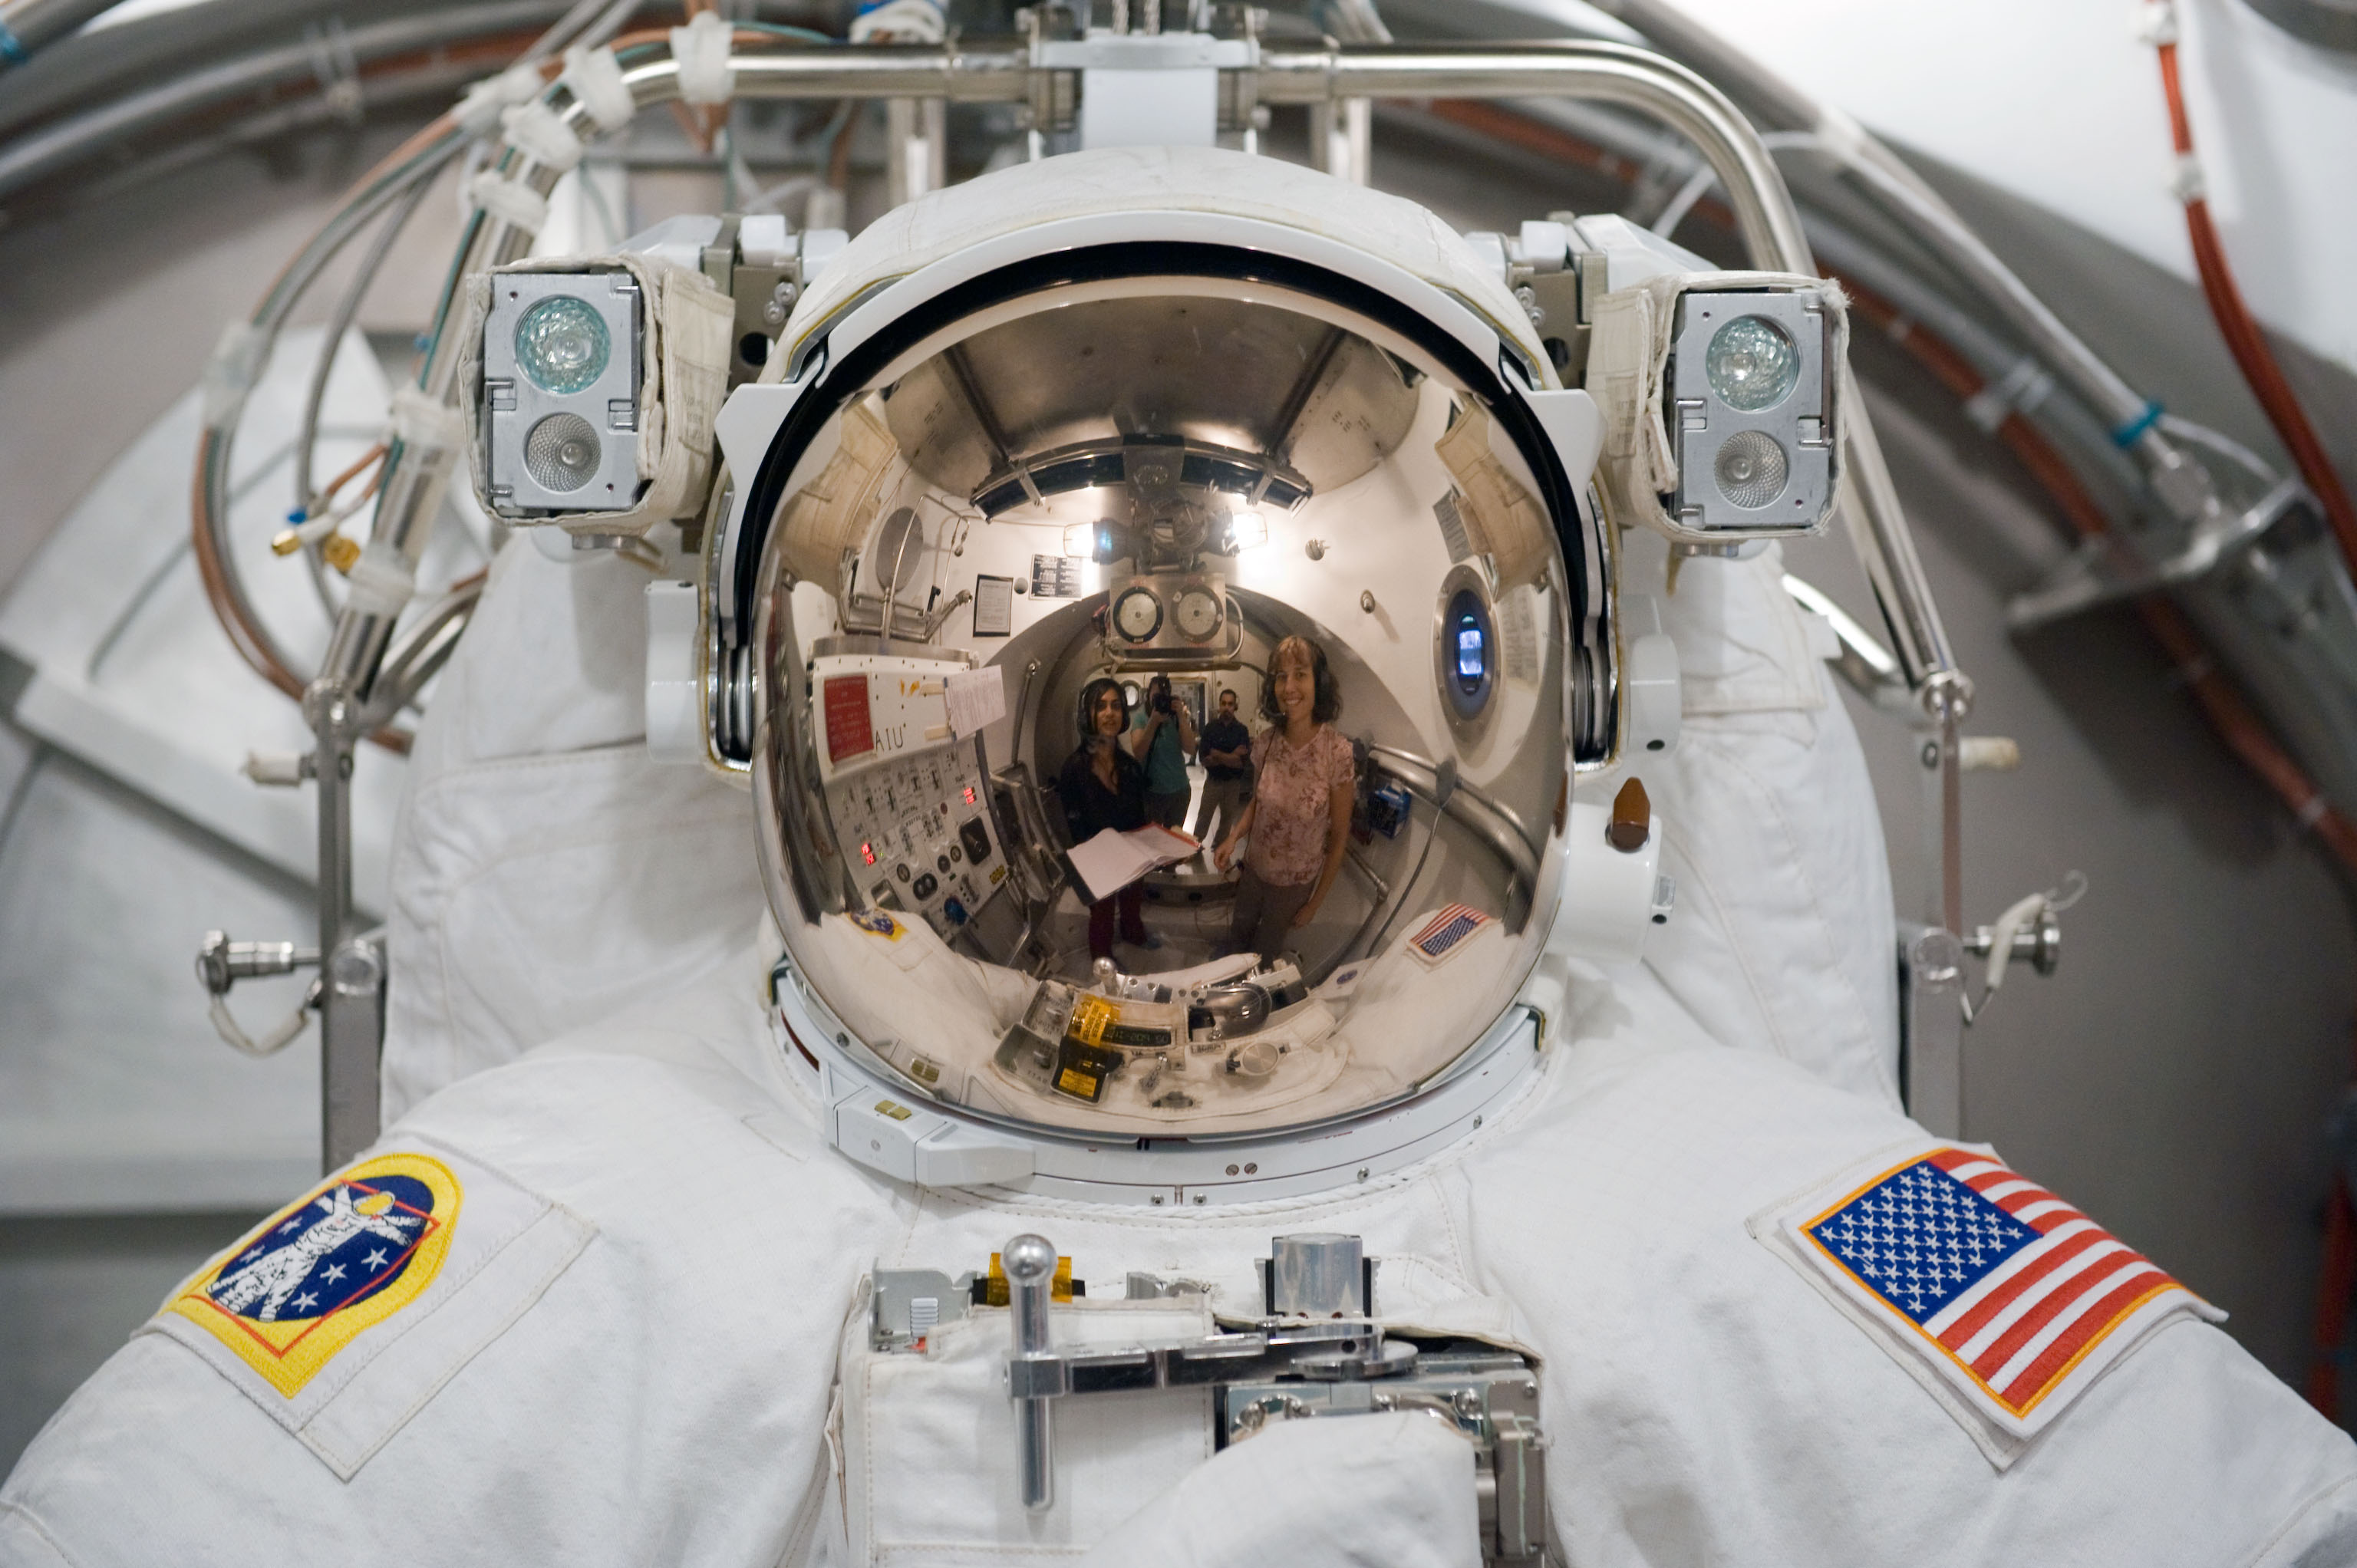 File:STS-131 Spacesuit Fit Check 2.jpg - Wikimedia Commons